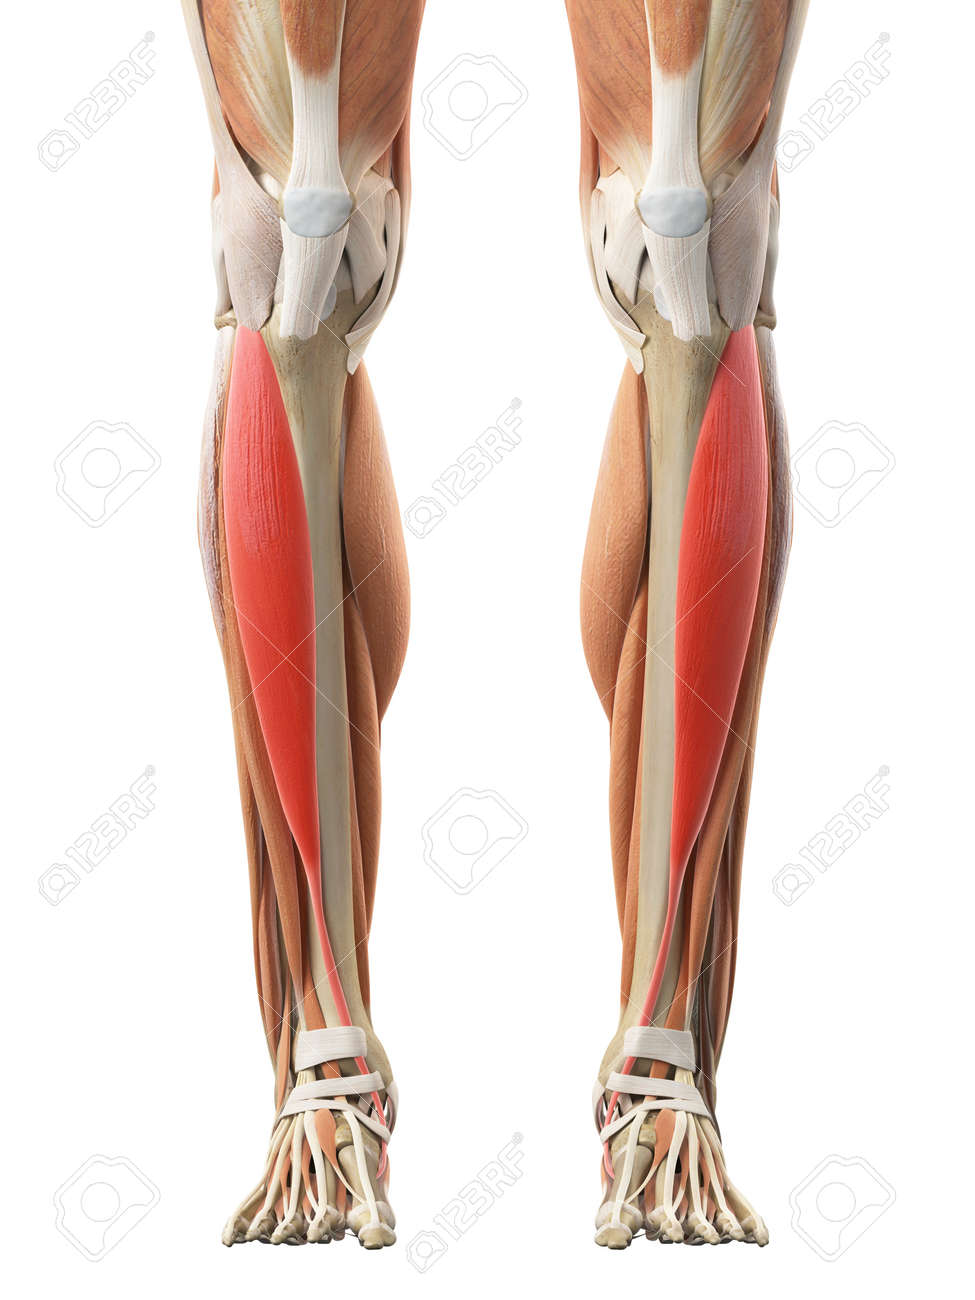 Medically Accurate Illustration Of The Tibialis Anterior Stock Photo ...